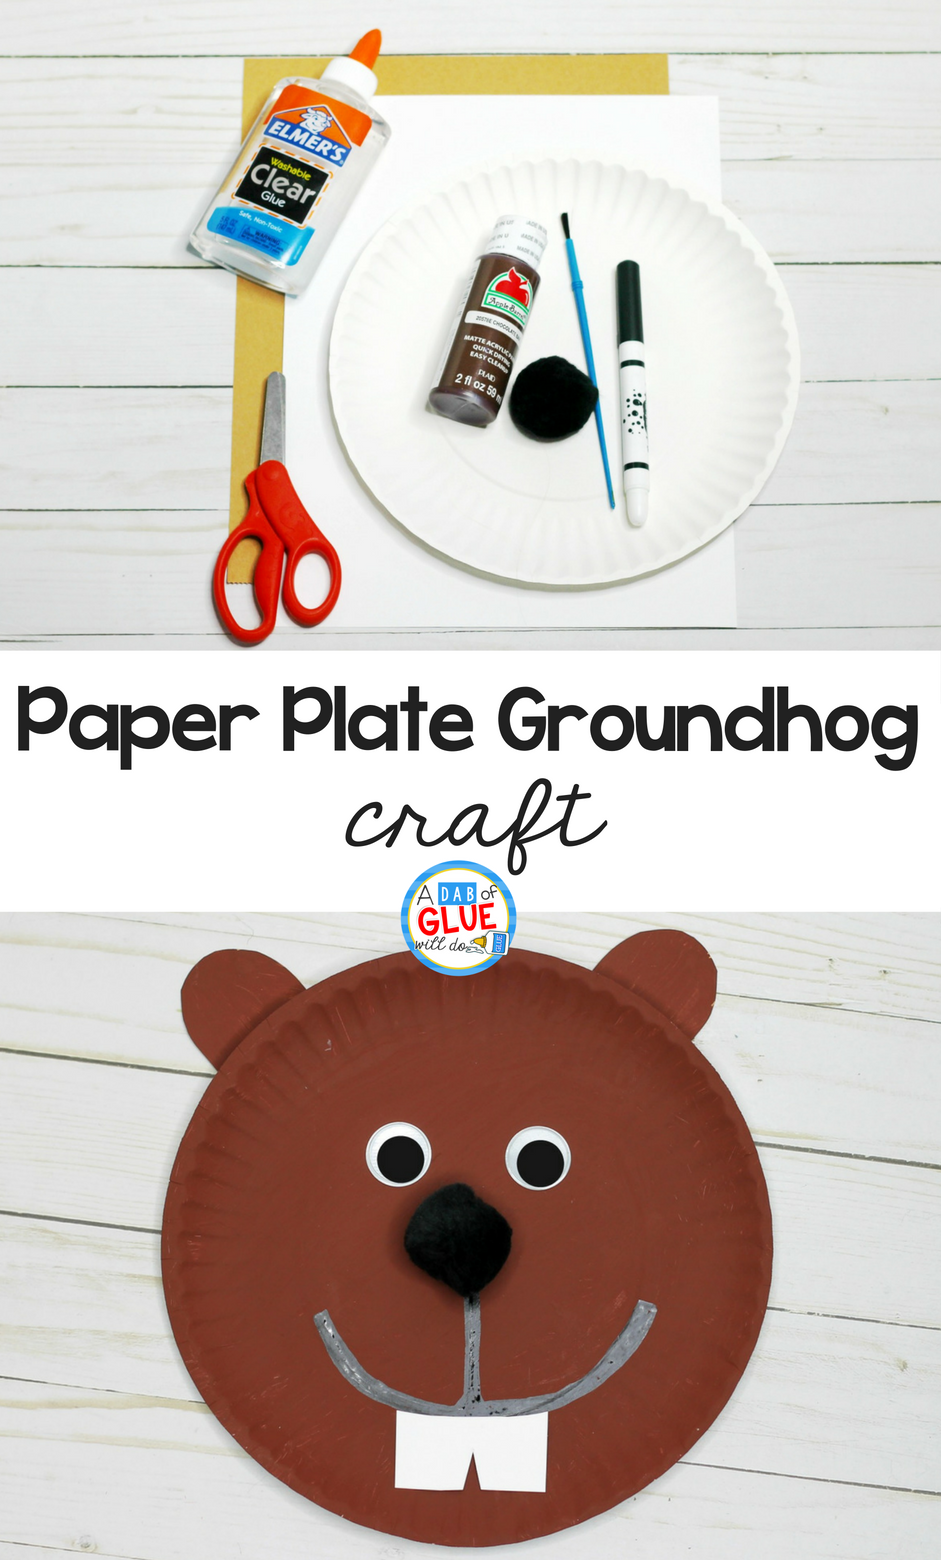 Paper Plate Groundhog Craft